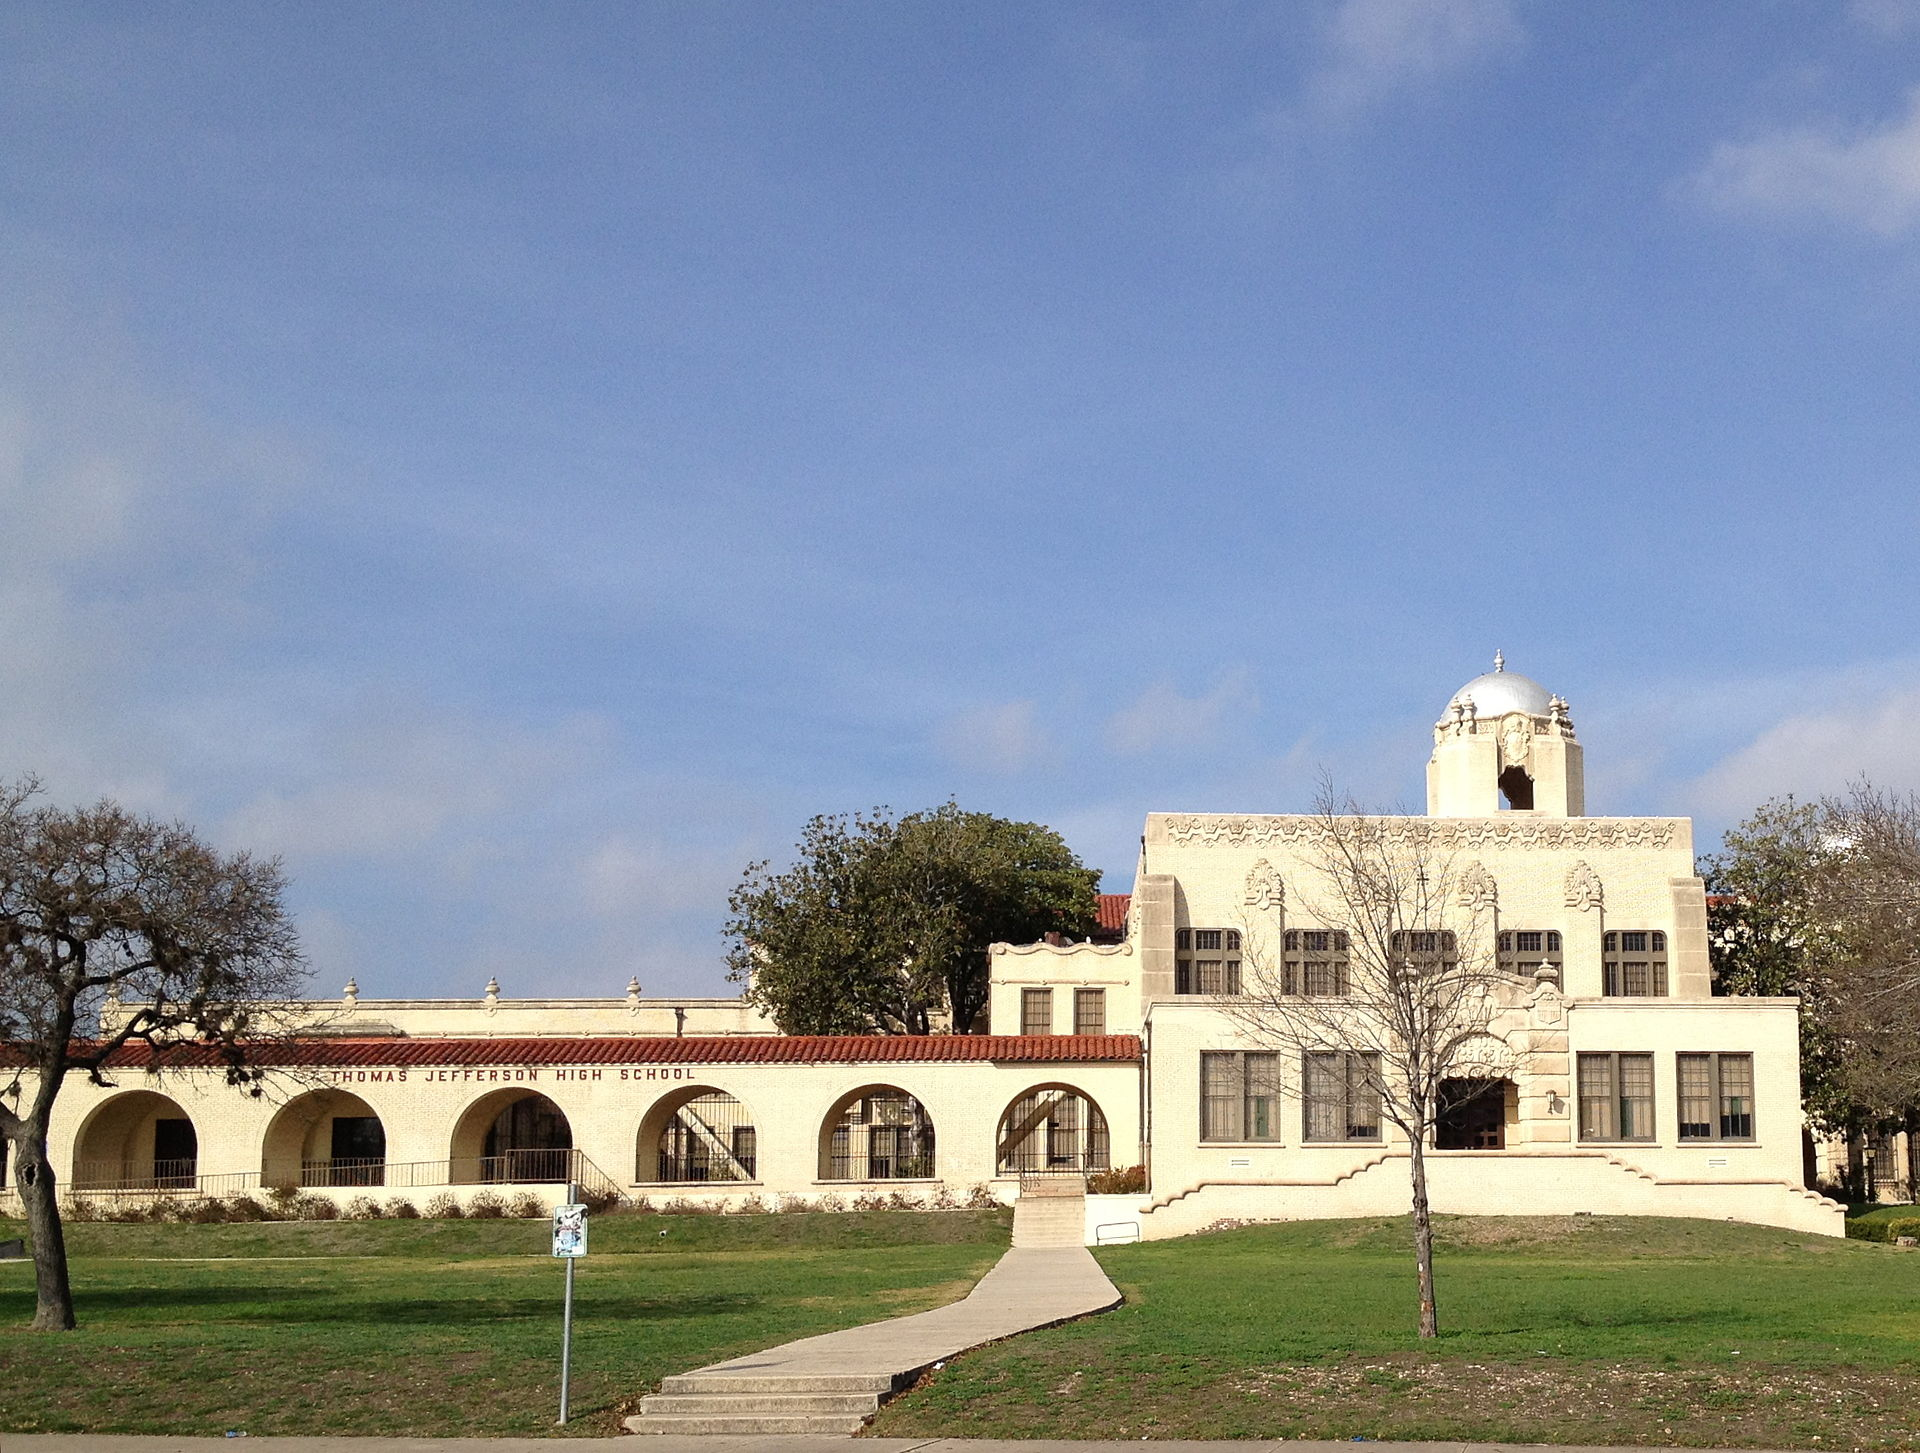 Thomas Jefferson High School in San Antonio, Texas